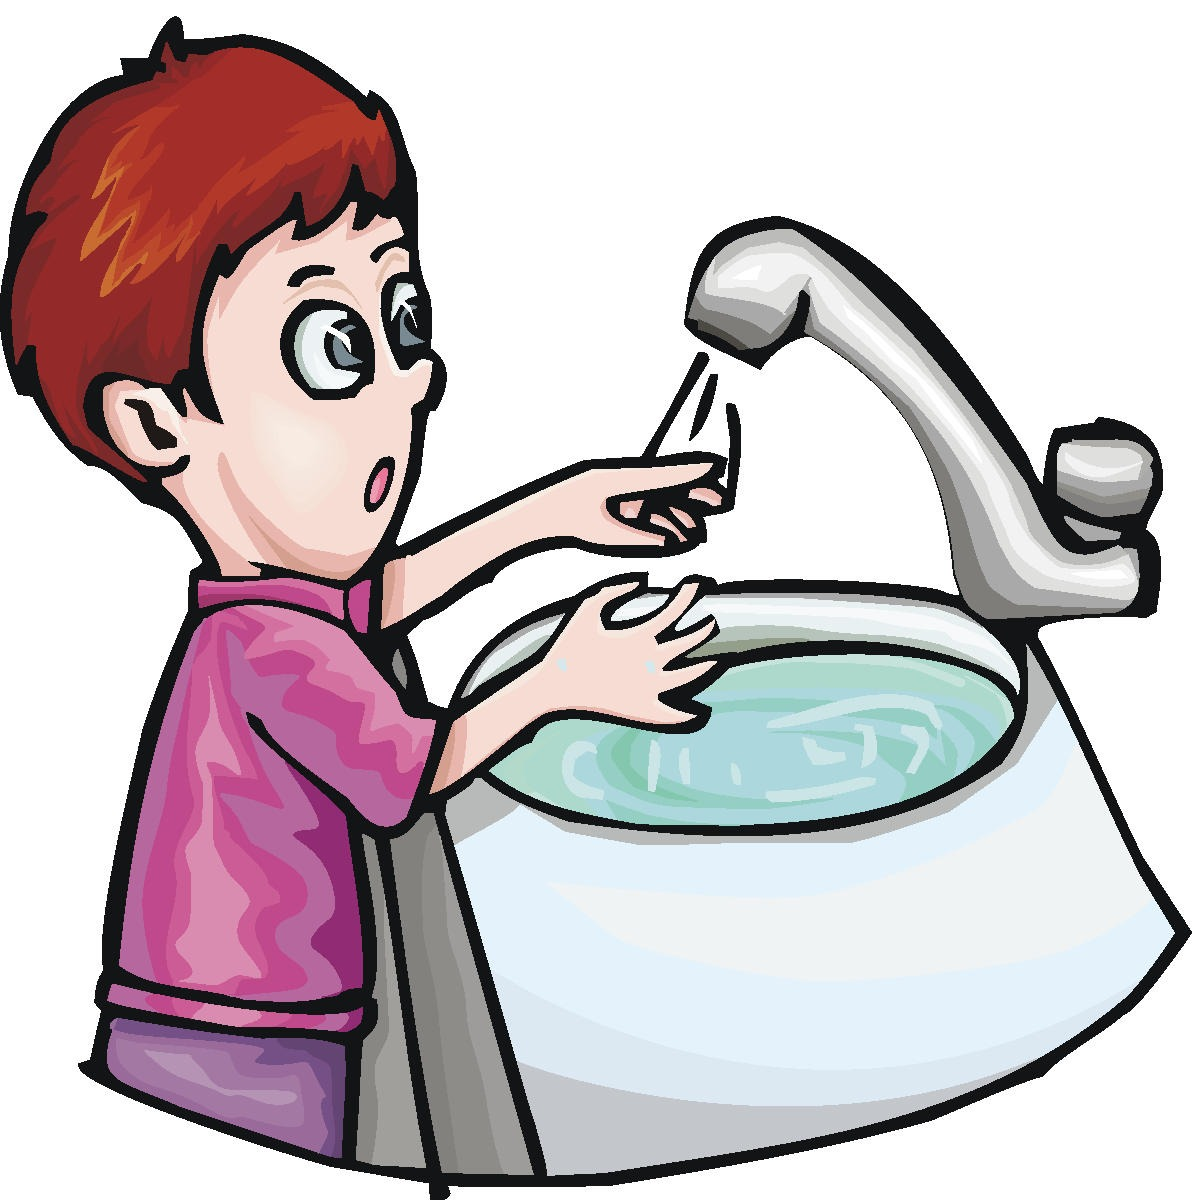 Child washing hands clipart free download Kids hand washing clipart - ClipartFest free download